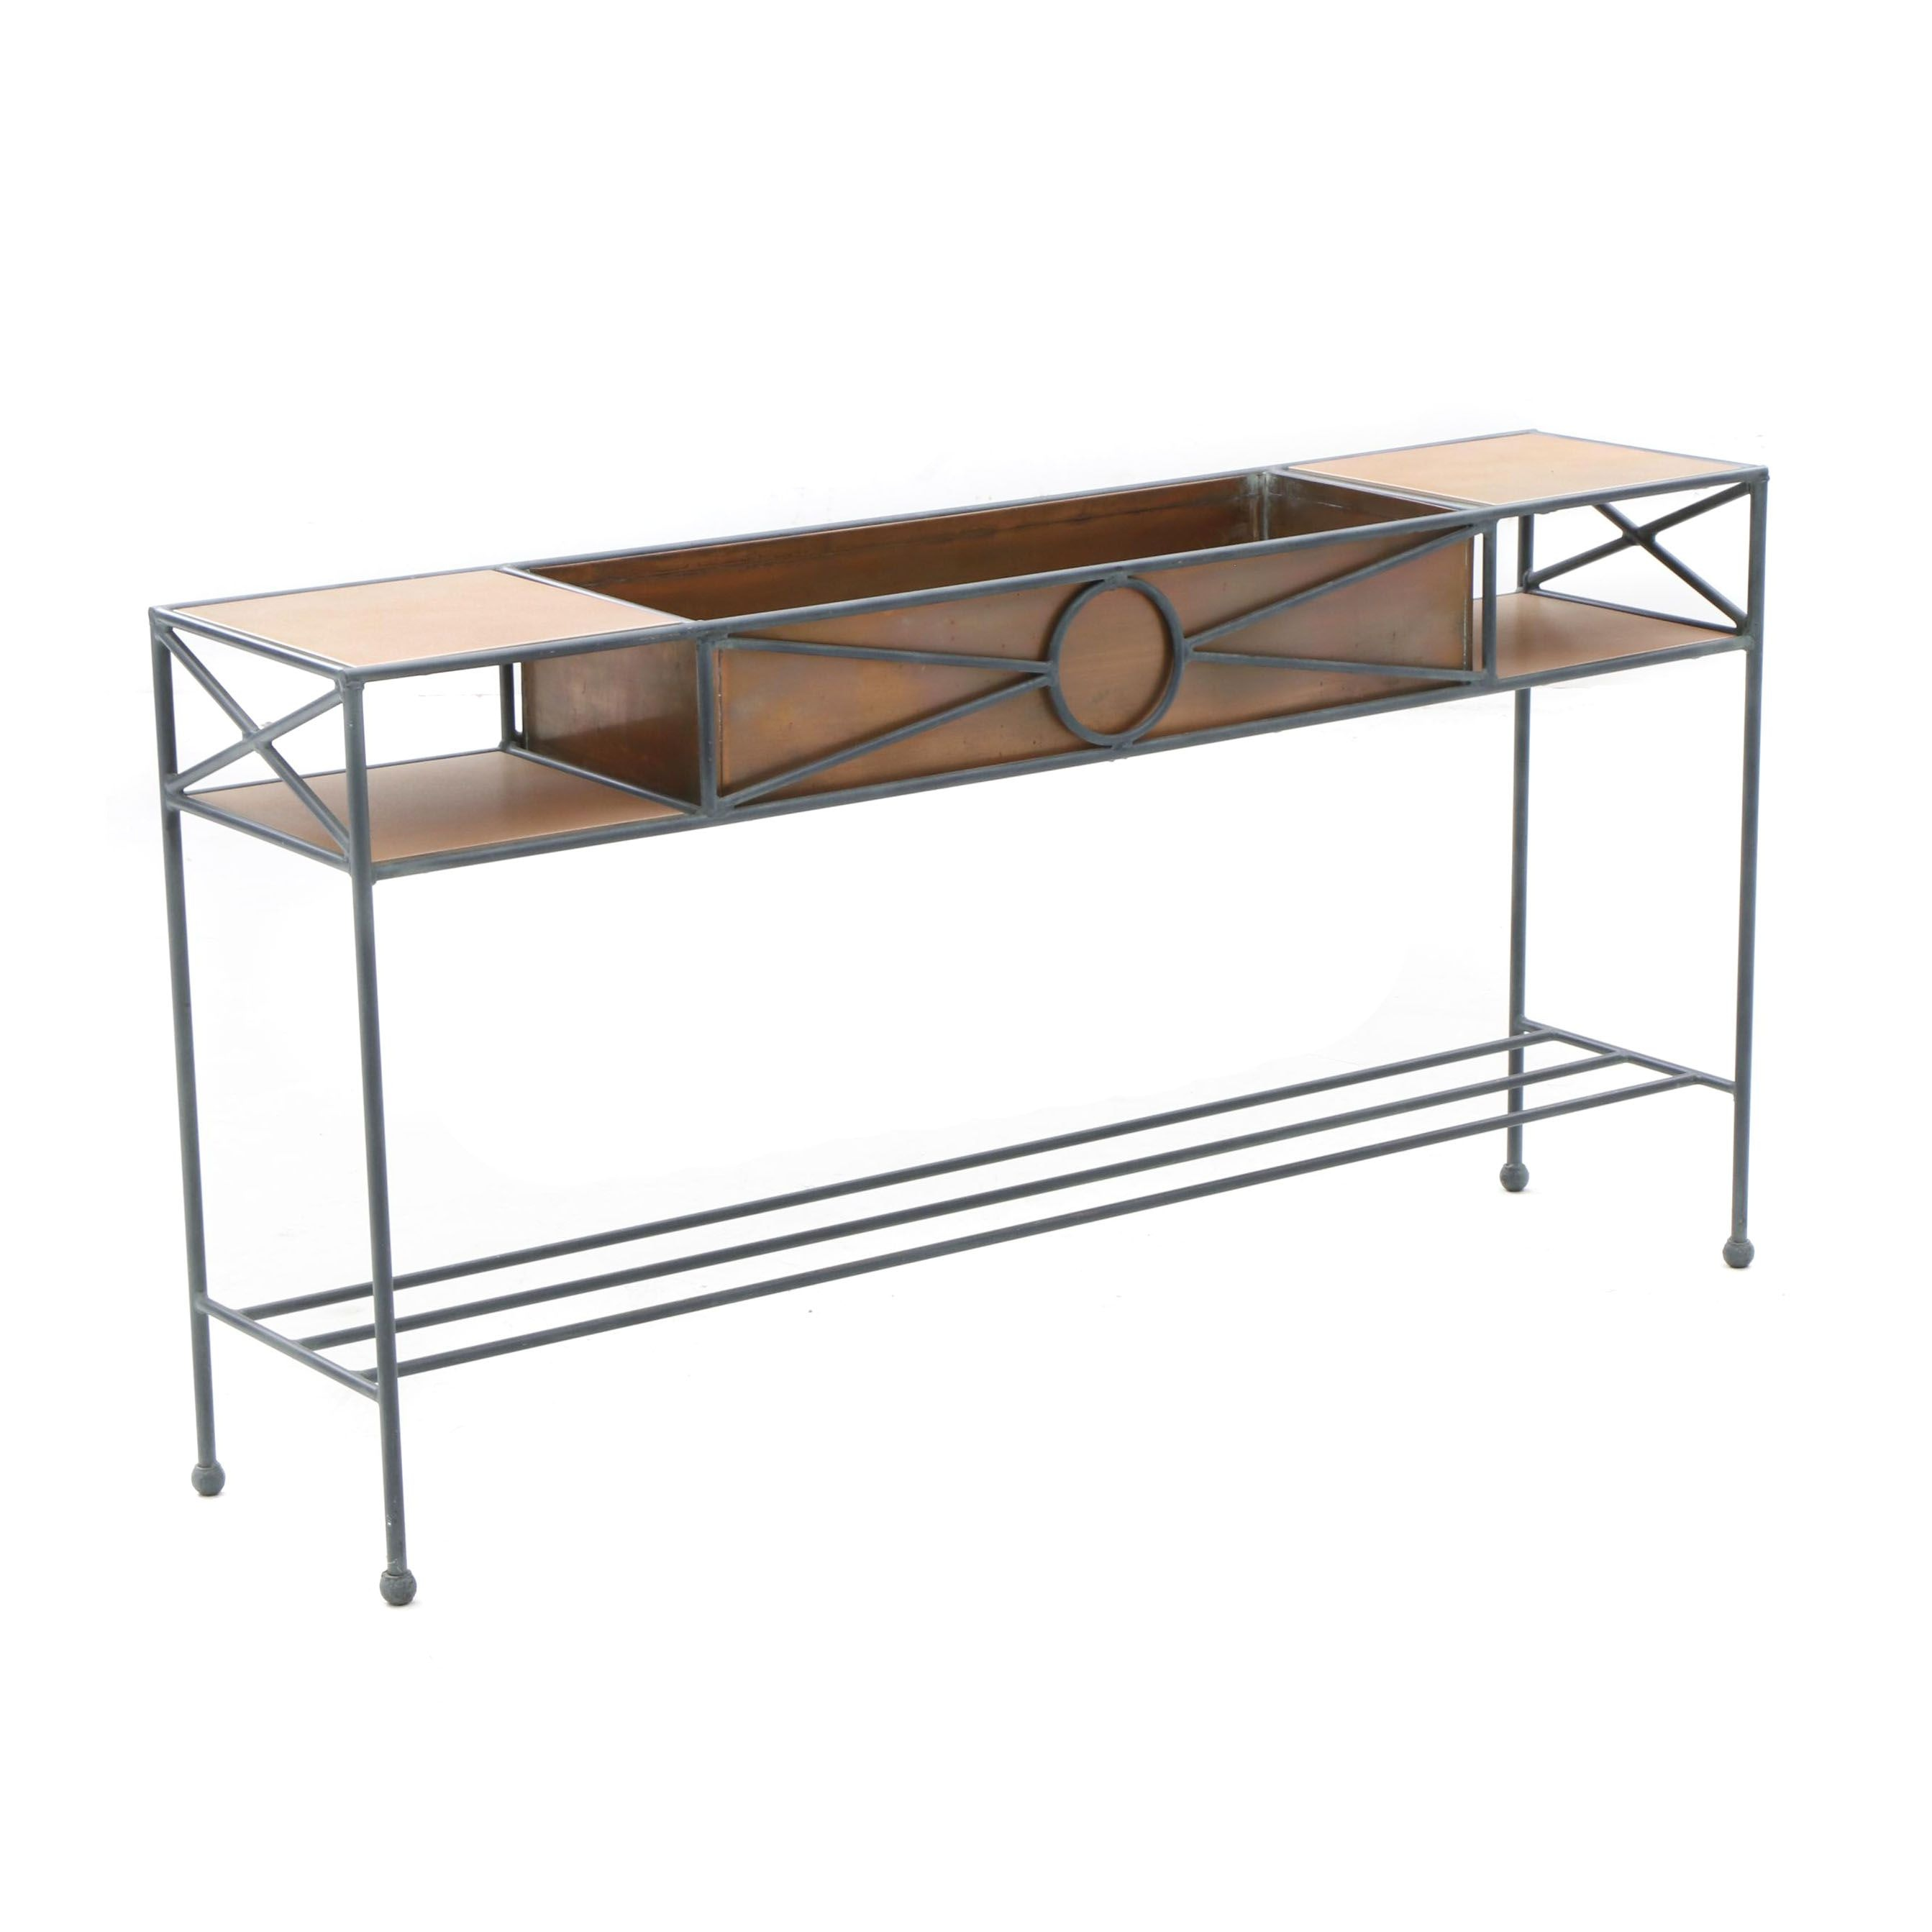 Charleston Forge Iron Console Table with Copper and Tile Inserts